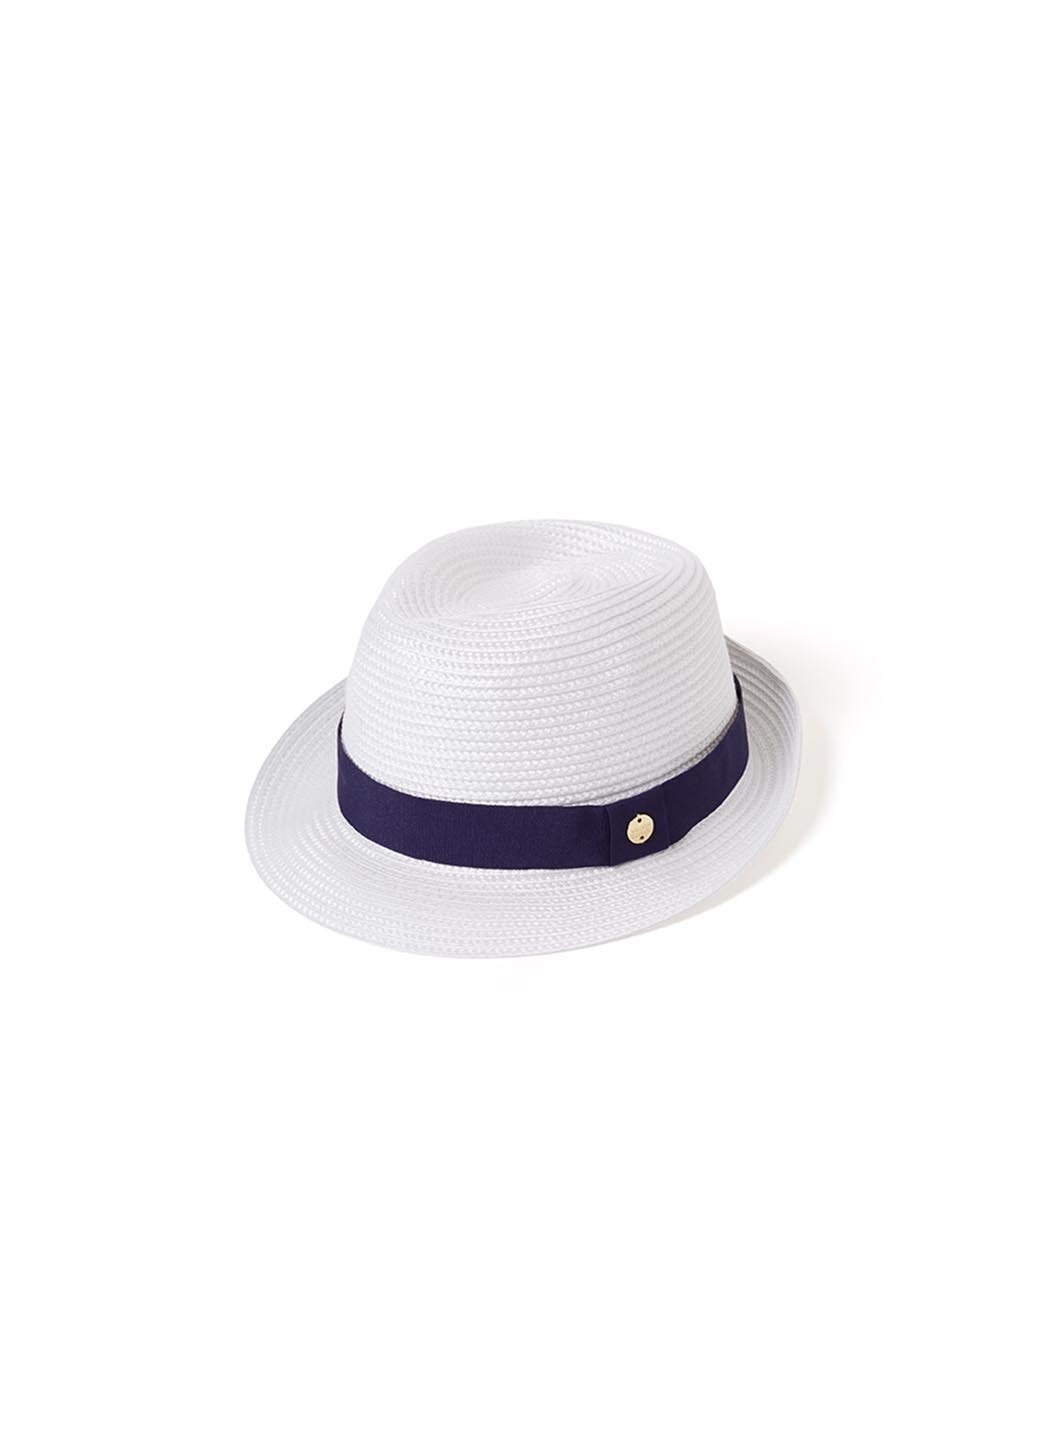 Eva Hat White Navy